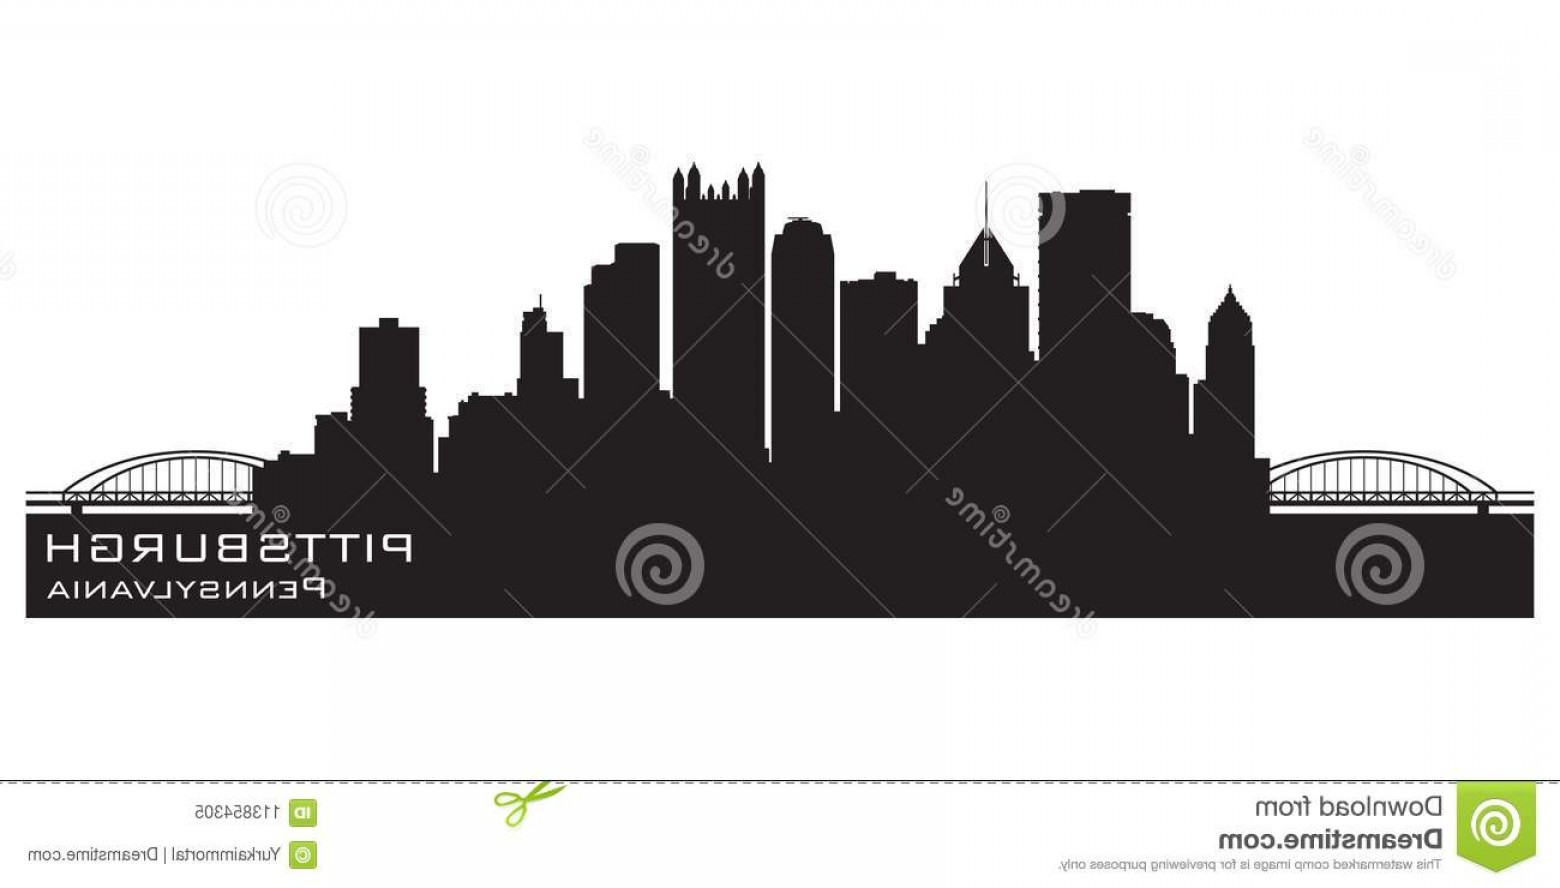 Pittsburgh City Skyline Vector: Pittsburgh Pennsylvania Skyline Background Vector Illustration Pittsburgh Pennsylvania City Skyline Detailed Vector Silhouette Image